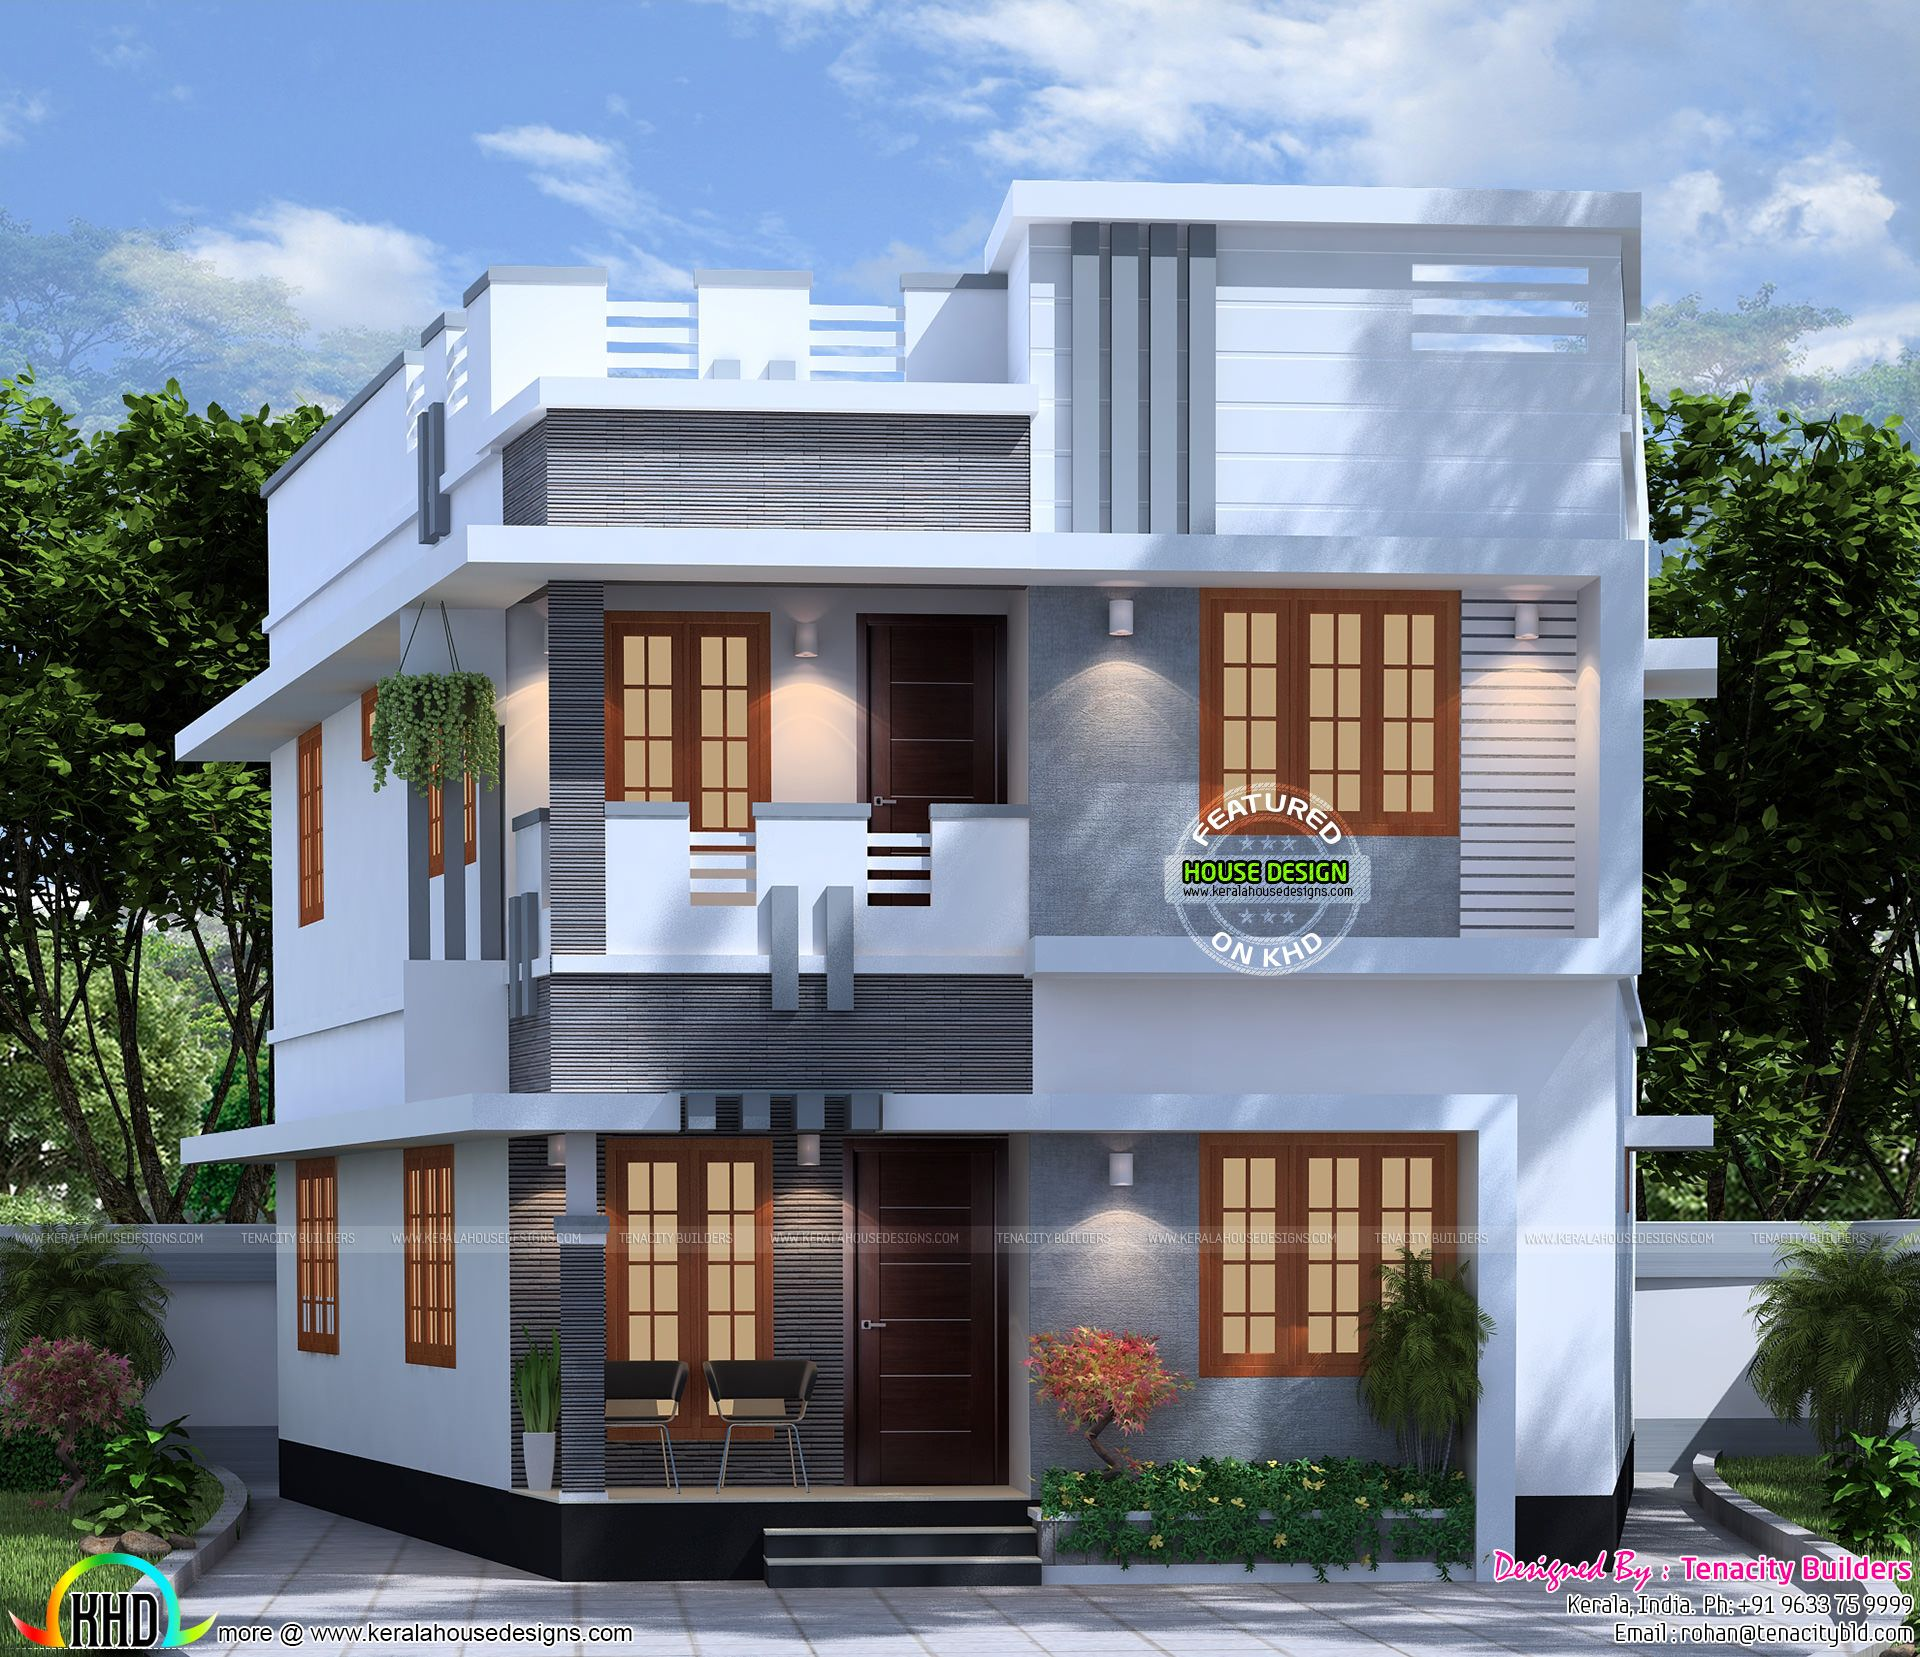 Newest House Plan 54 Modern House Plans For 1300 Sq Ft Kerala House Design Modern House Plans New House Plans